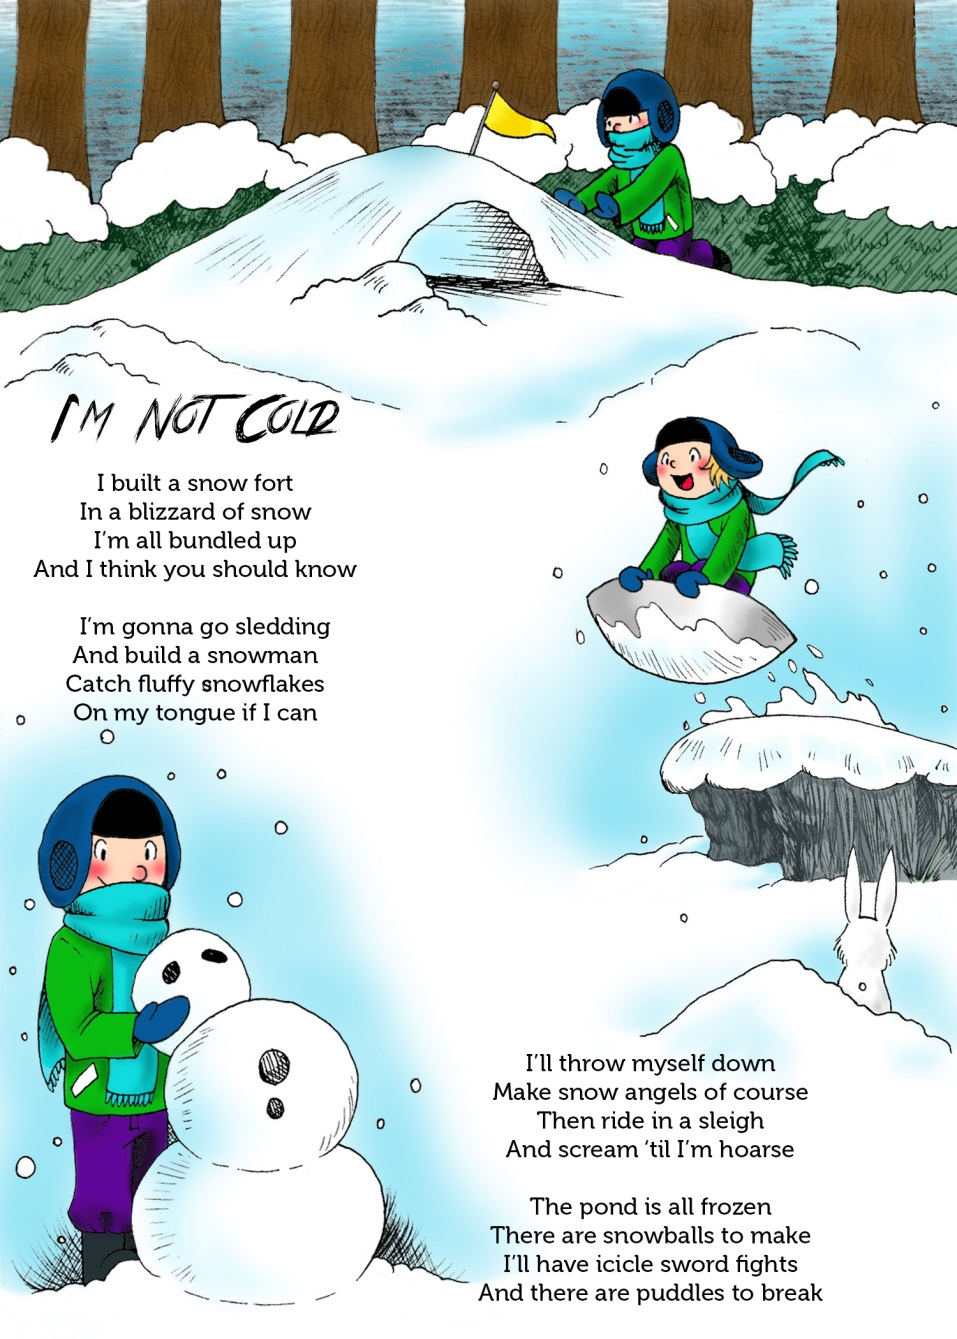 im not cold 1